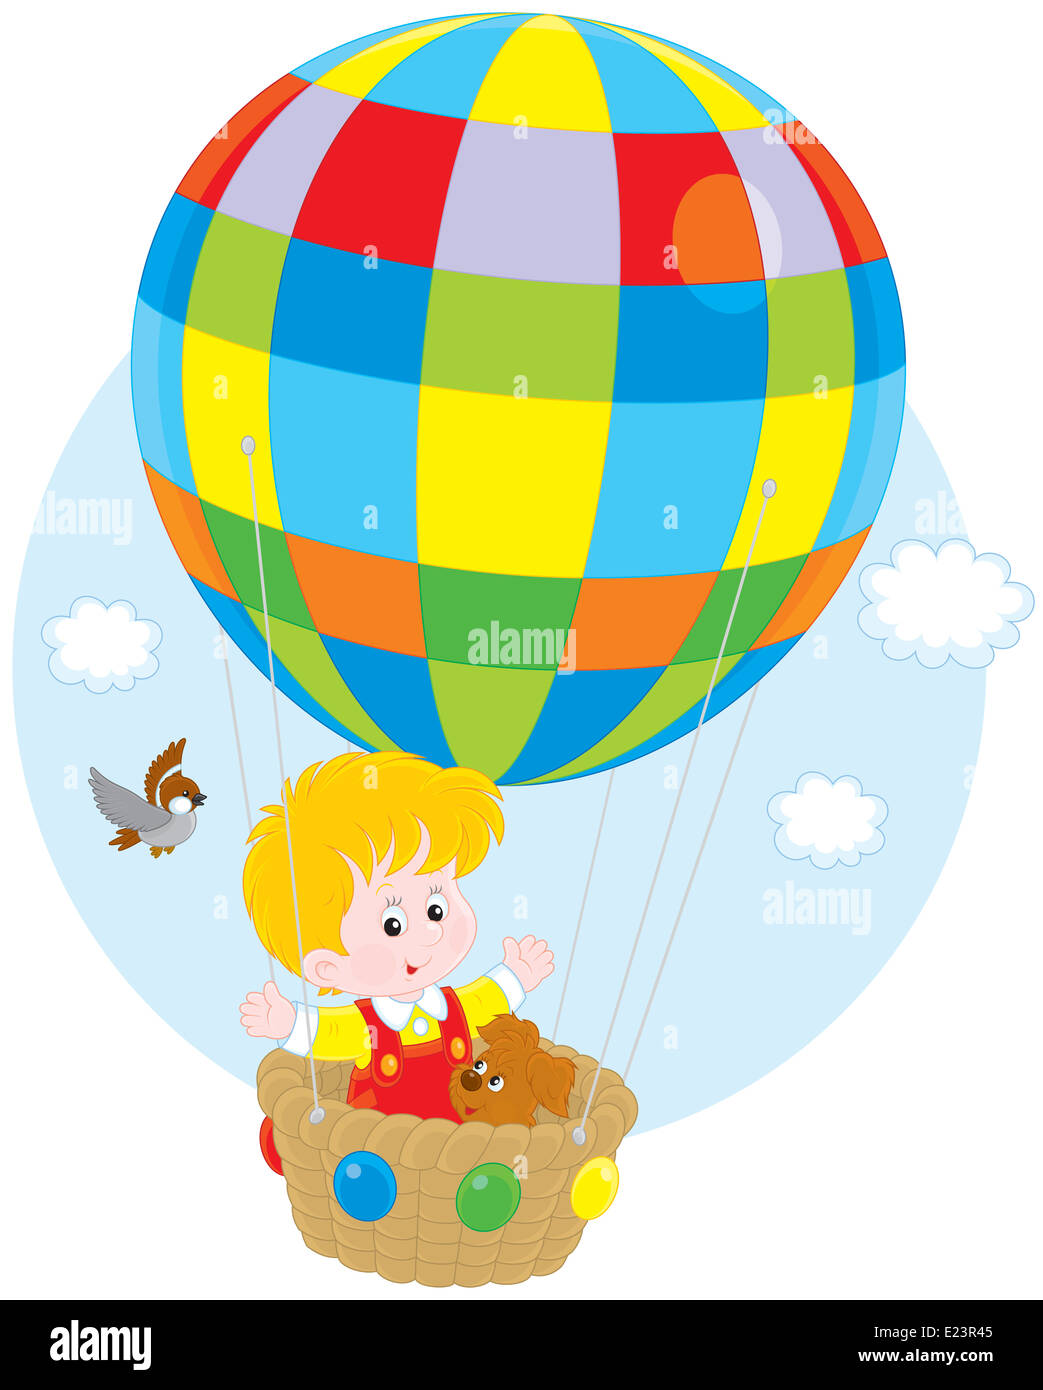 Little boy travelling with his pup on a colorful air balloon - Stock Image